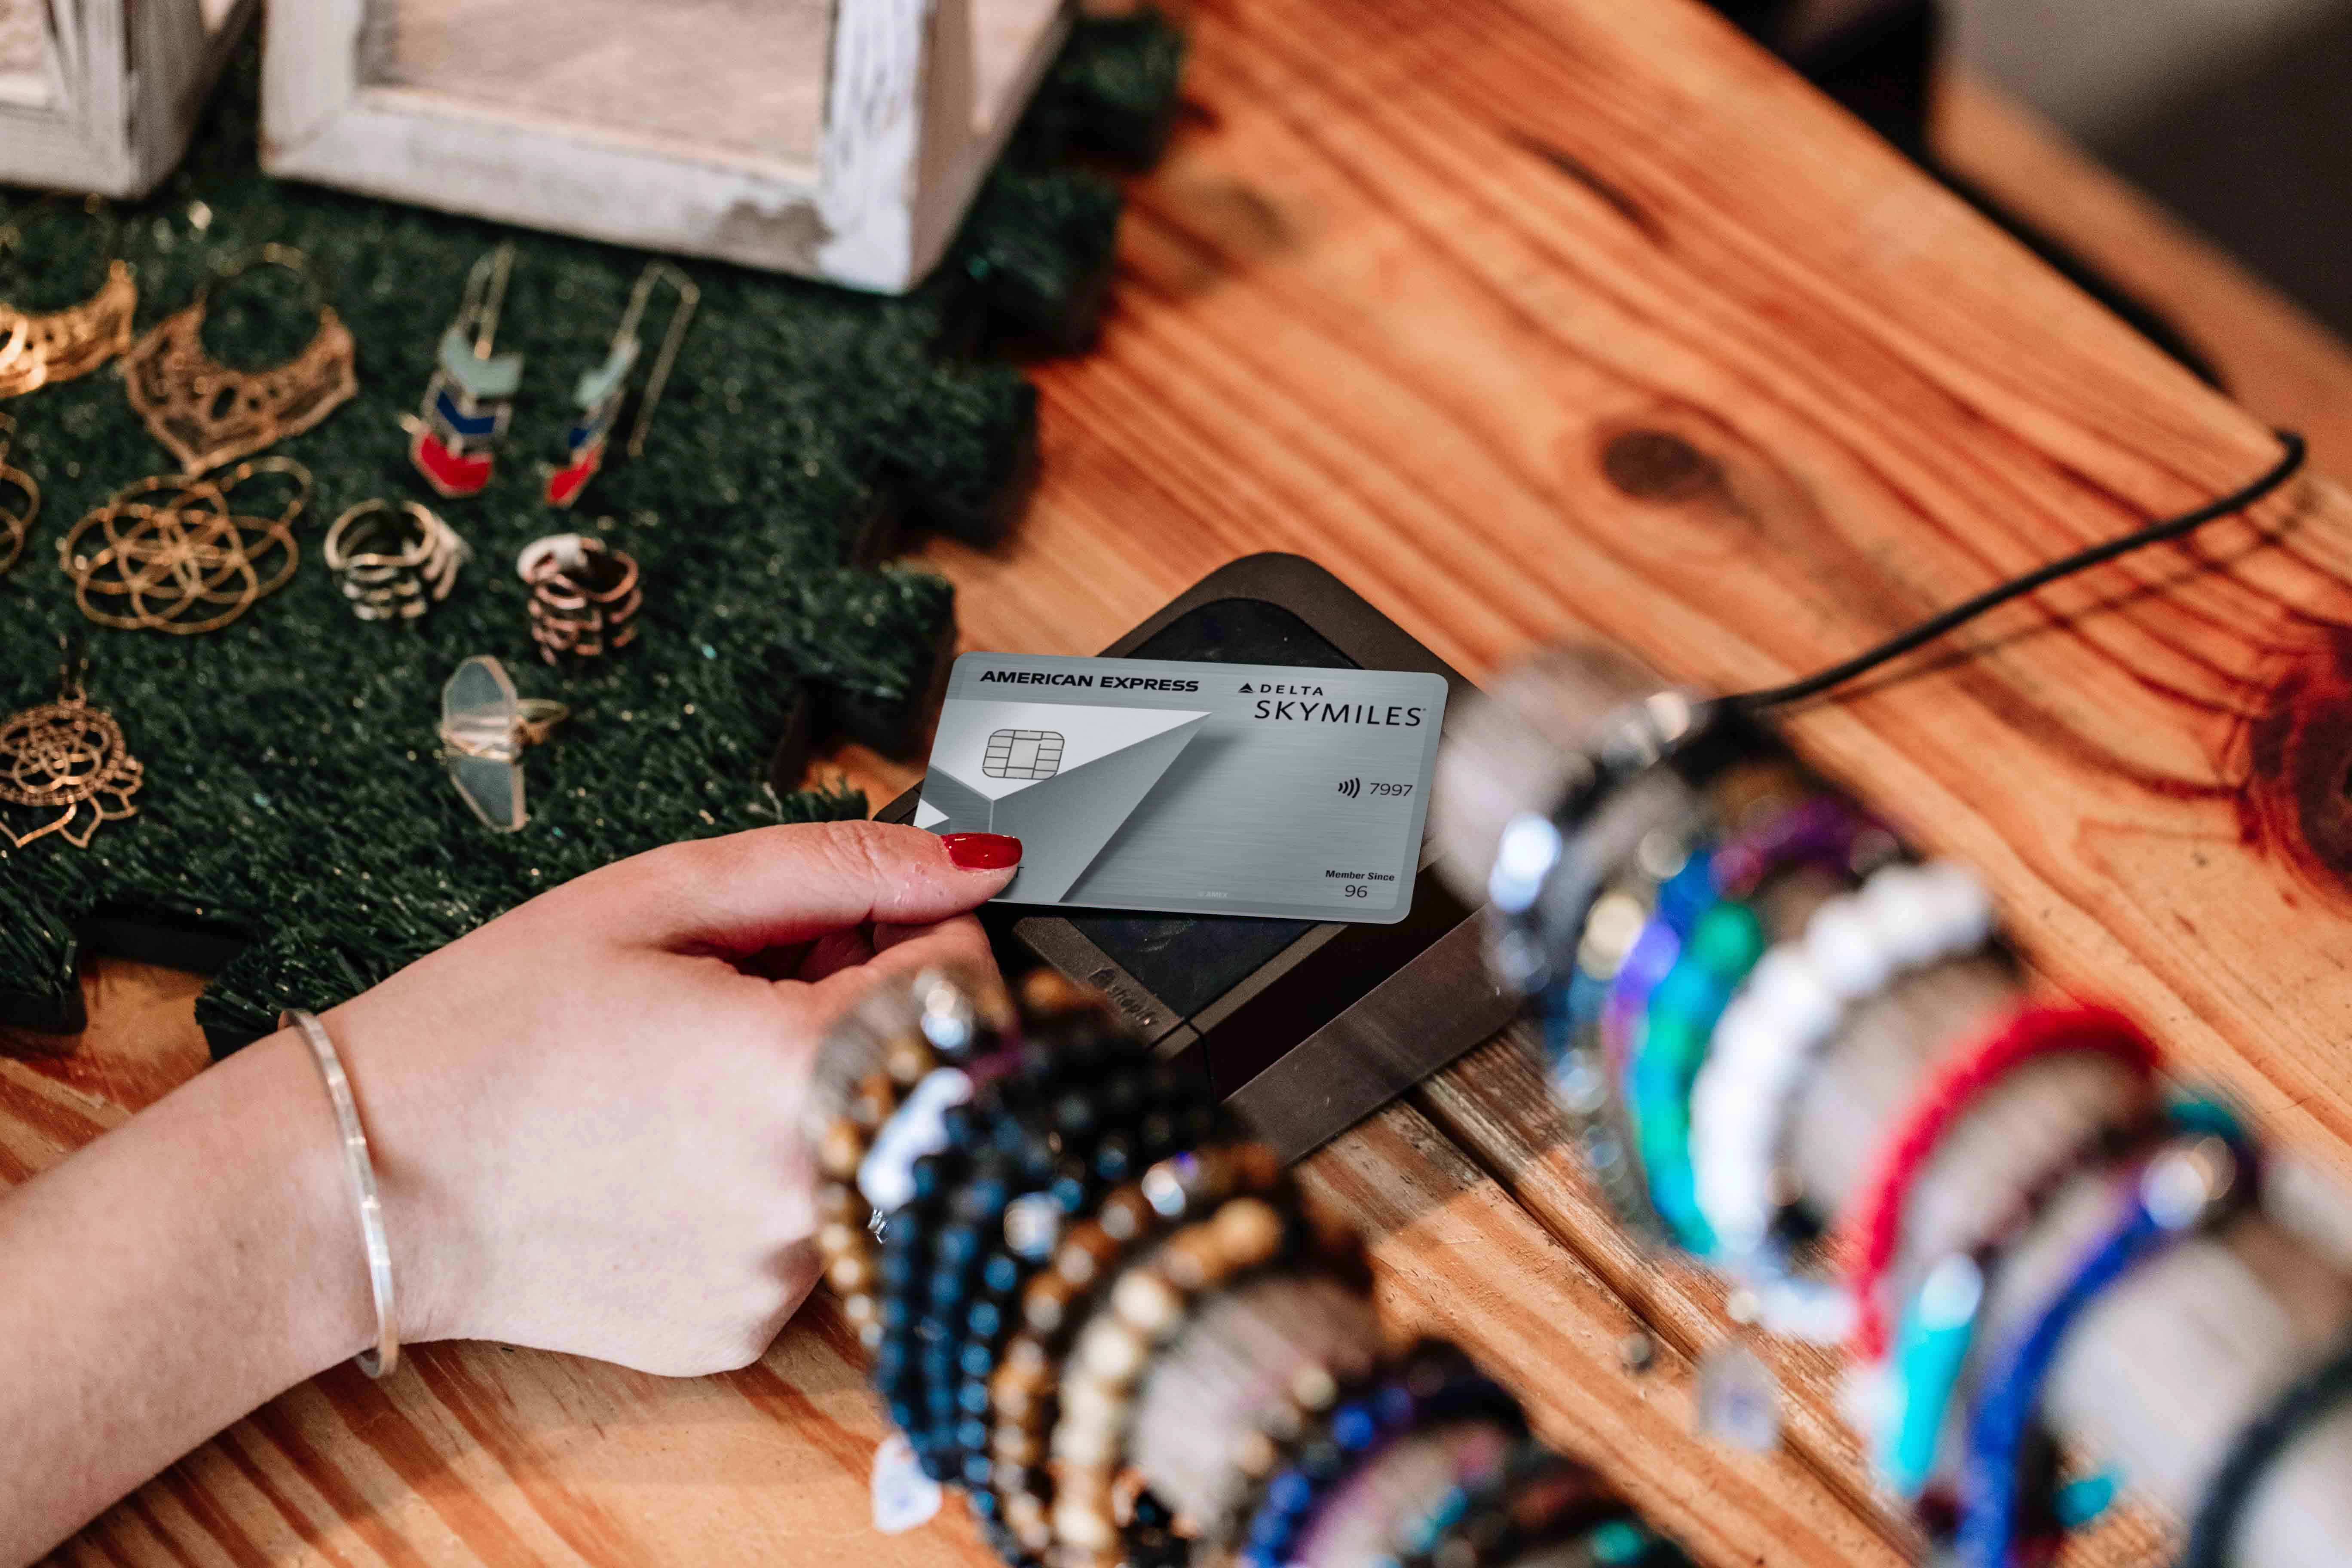 Delta and Amex Roll Out New Welcome Offers for Co-Branded Credit Cards